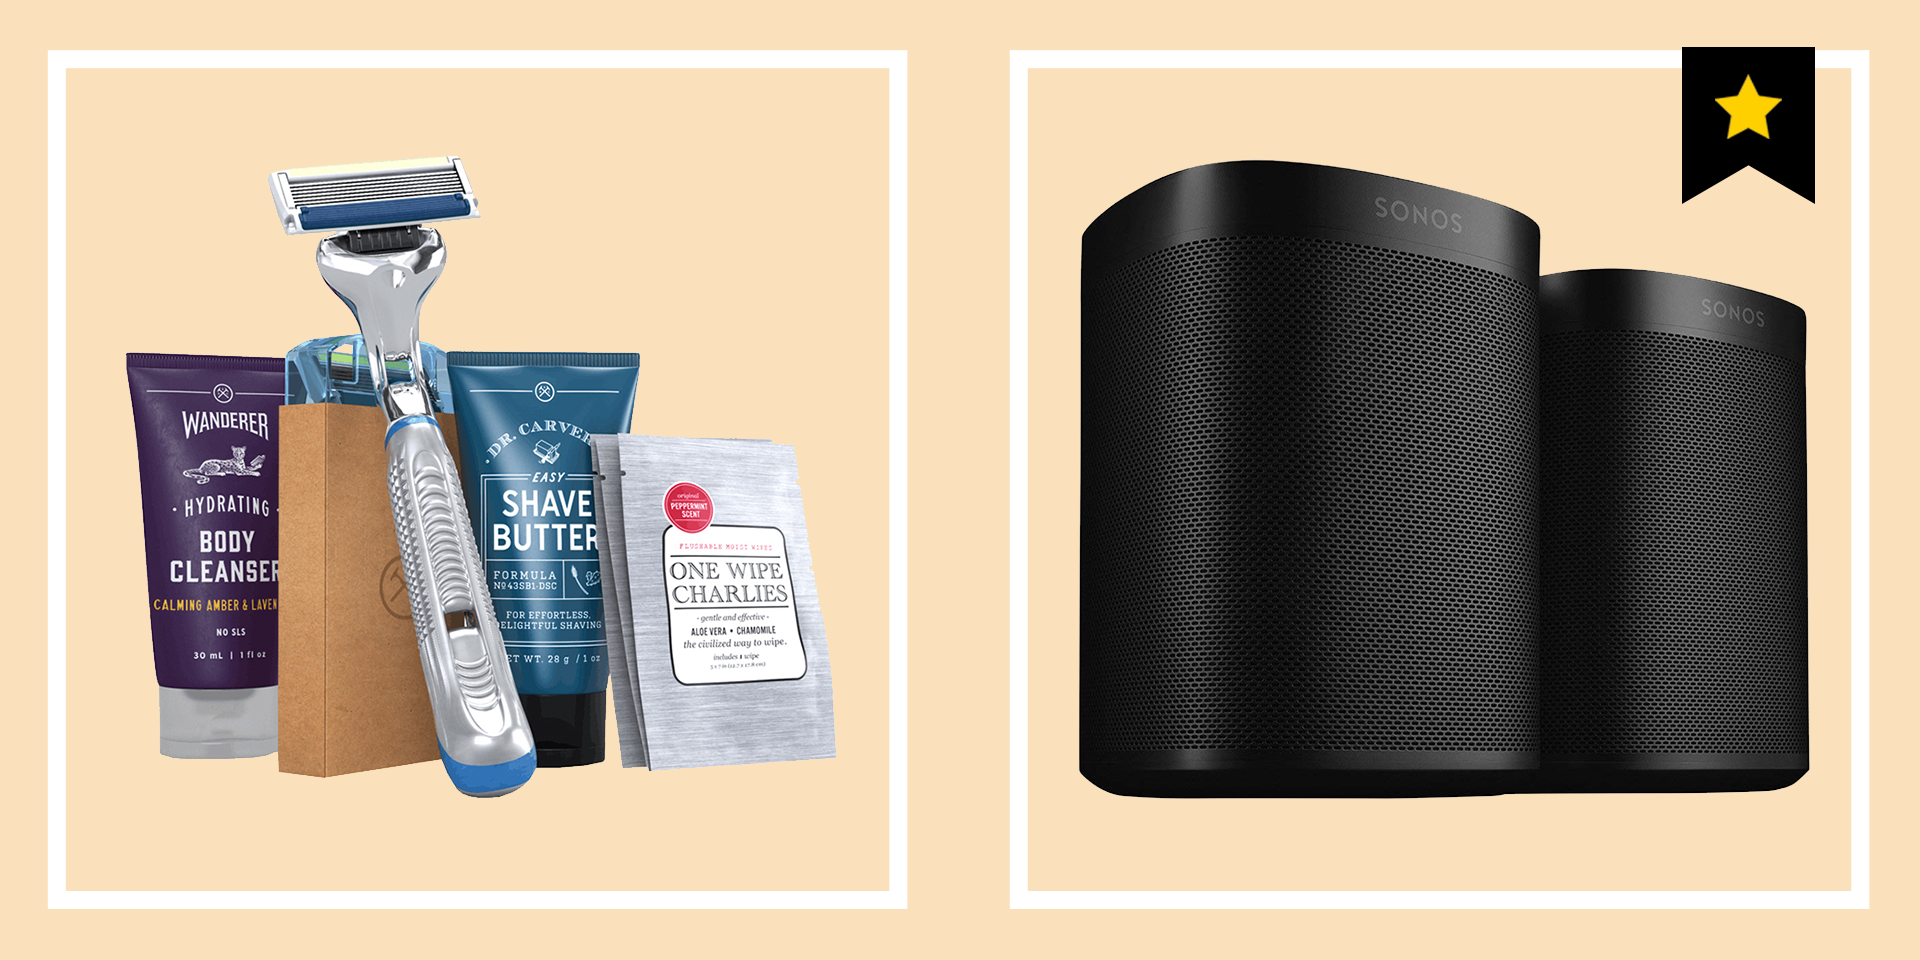 32 Best Last Minute Father's Day Gifts 2019 - Easy Gifts to Buy Dad